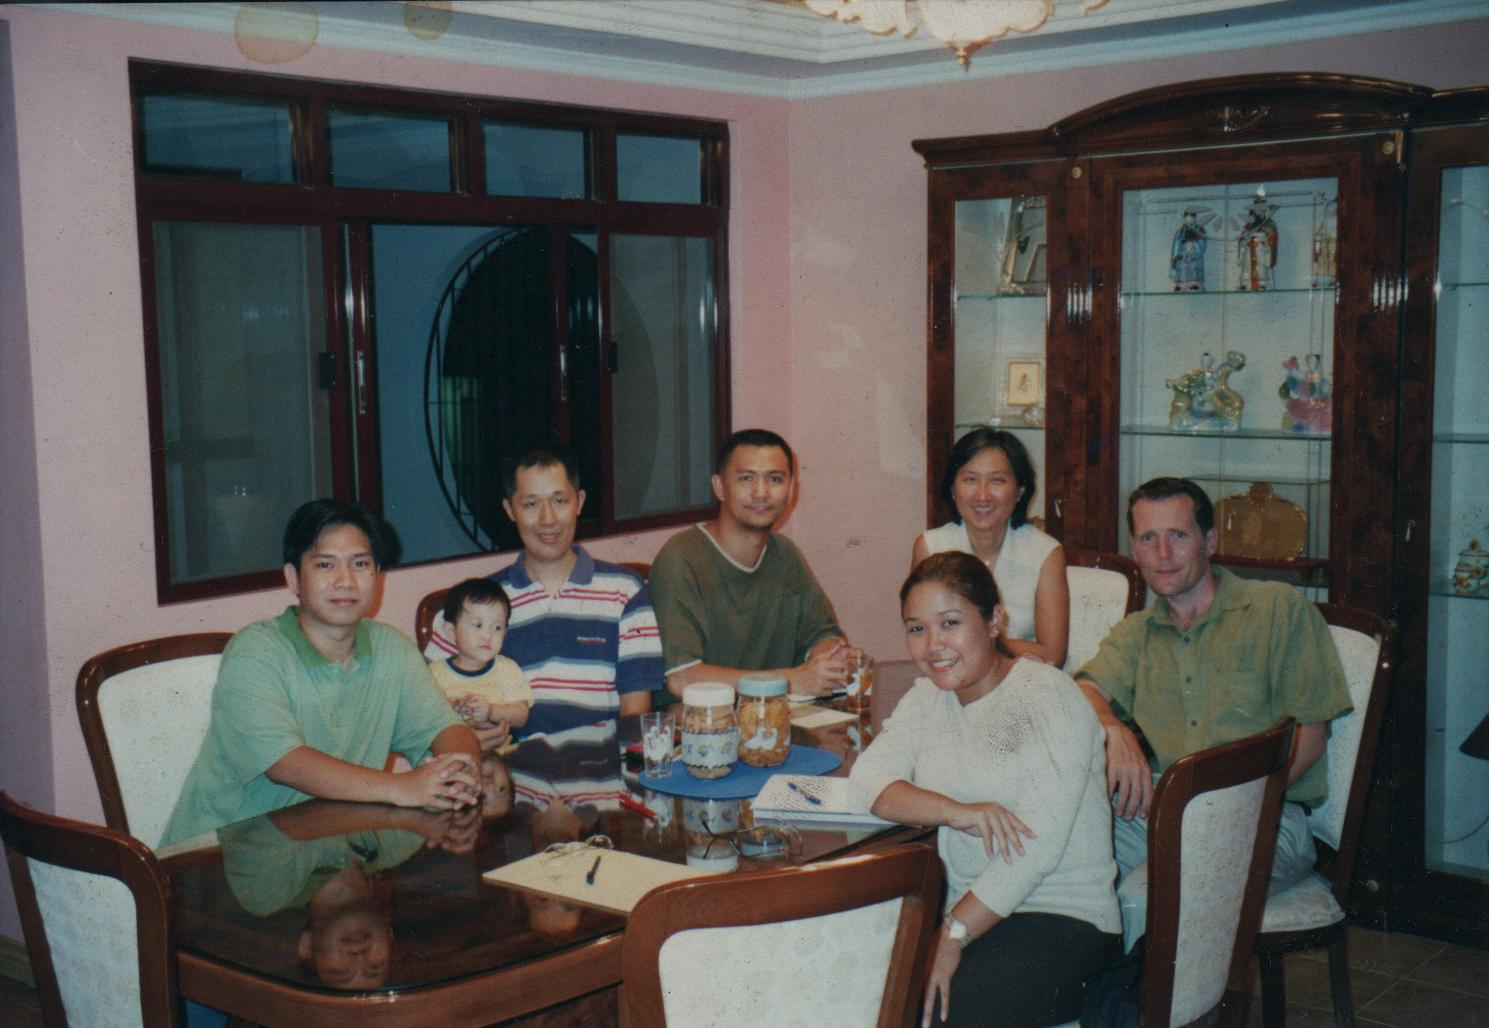 One of the earlier meetings of the WBCP. From L-R: Andrew Galano, Mike Lu (founding), Jon Villasper (founding), Natalie McCarthy, James McCarthy (founding), Kitty Arce (founding)